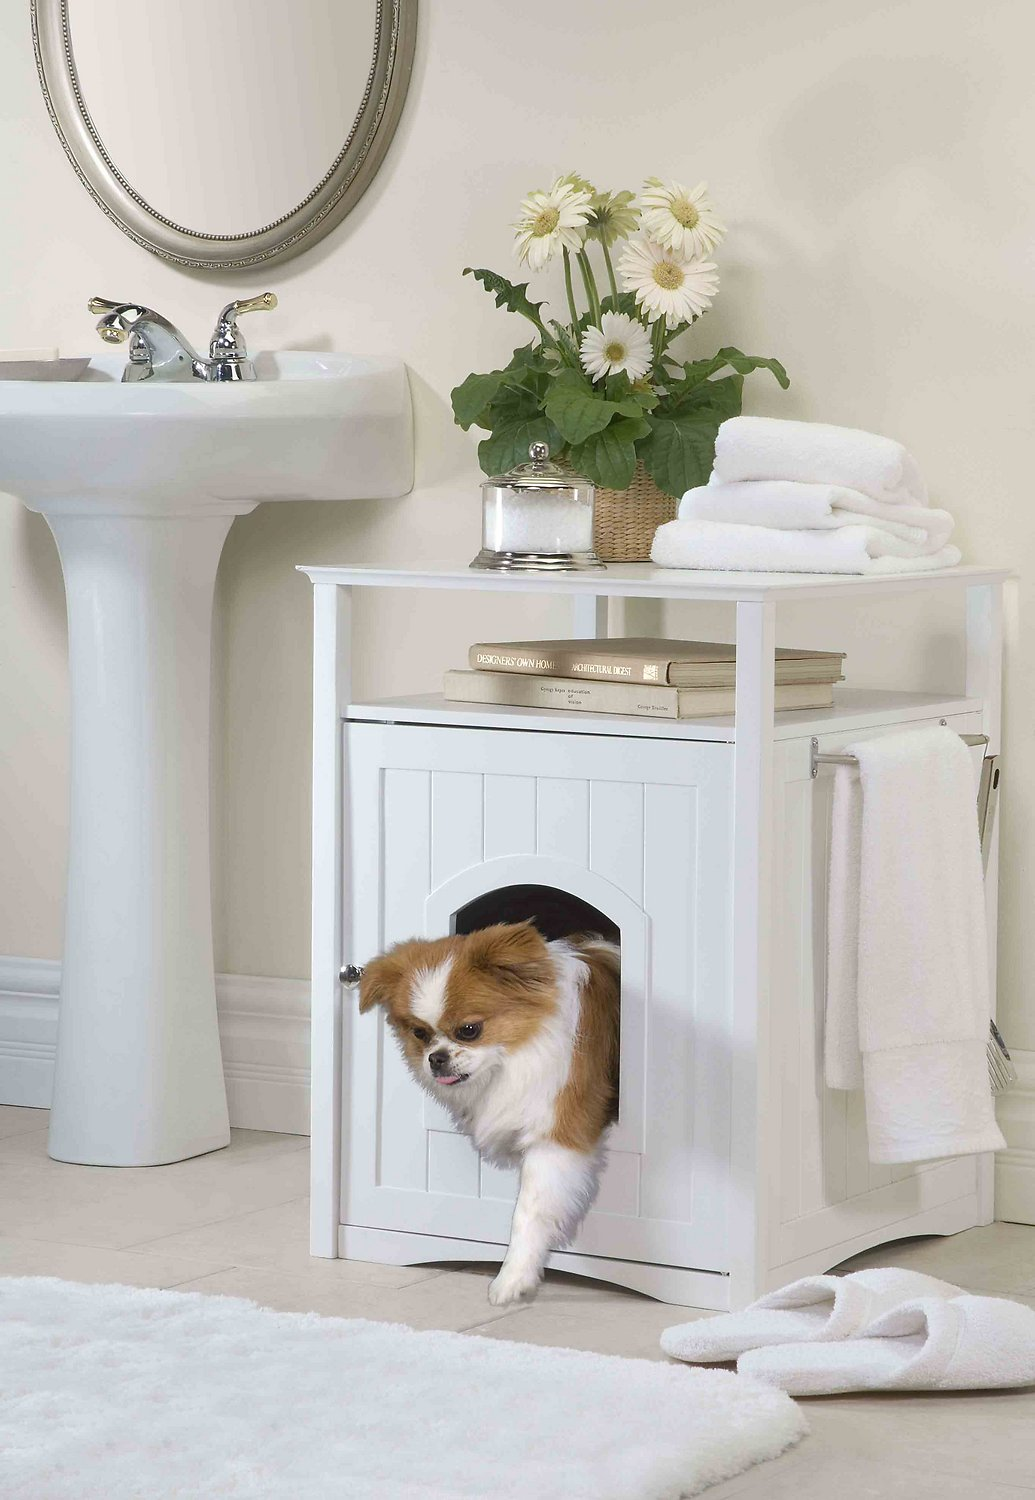 Merry Products Washroom Night Stand Multifunctional Litter